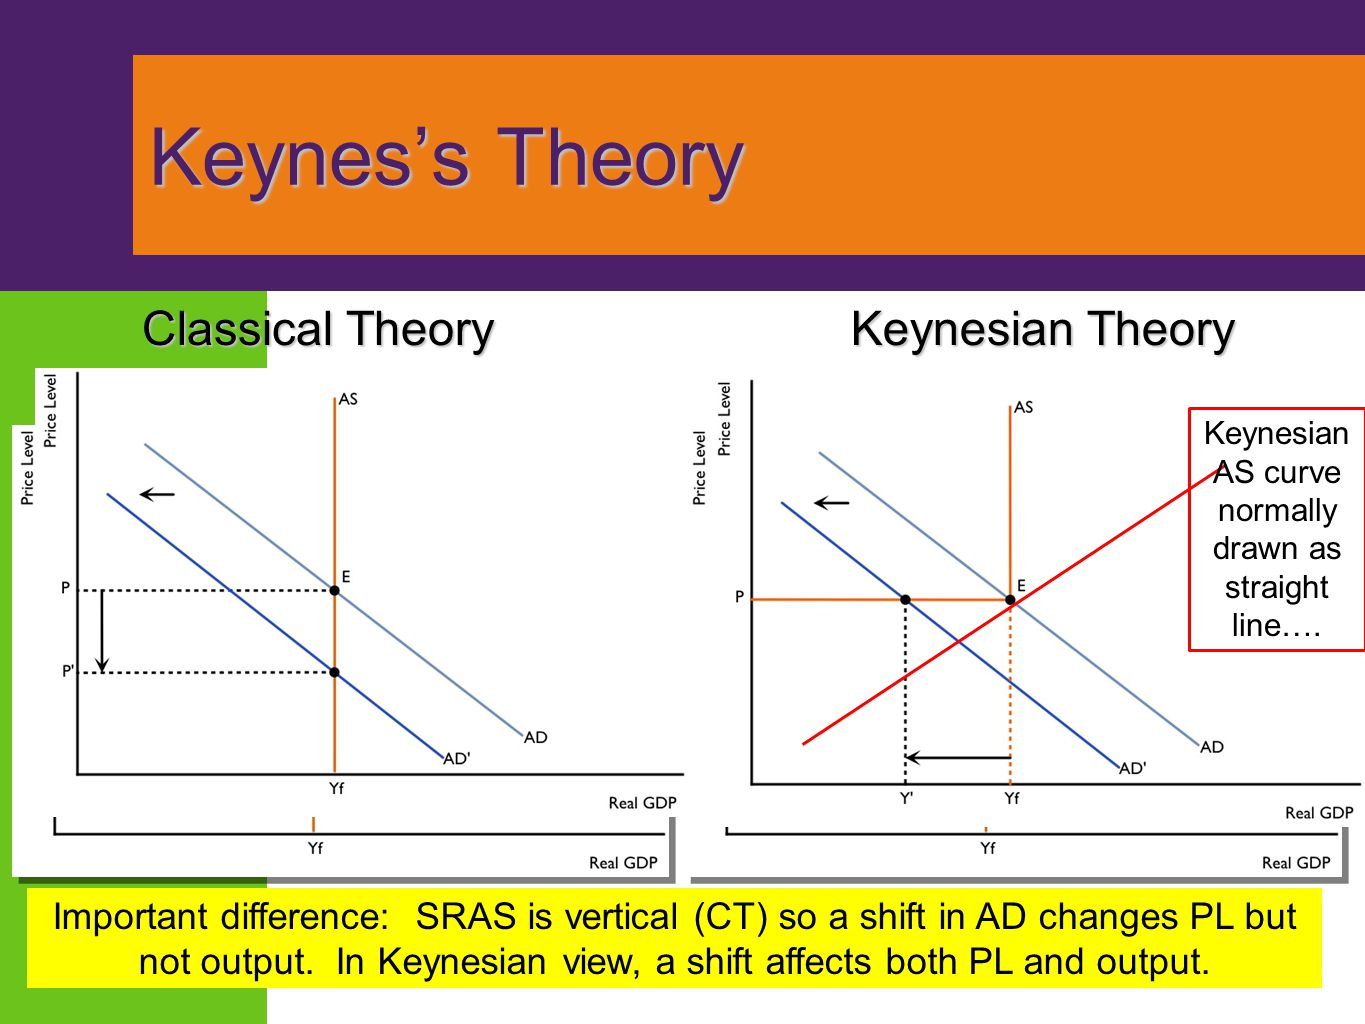 Keynesian AS curve normally drawn as straight line….